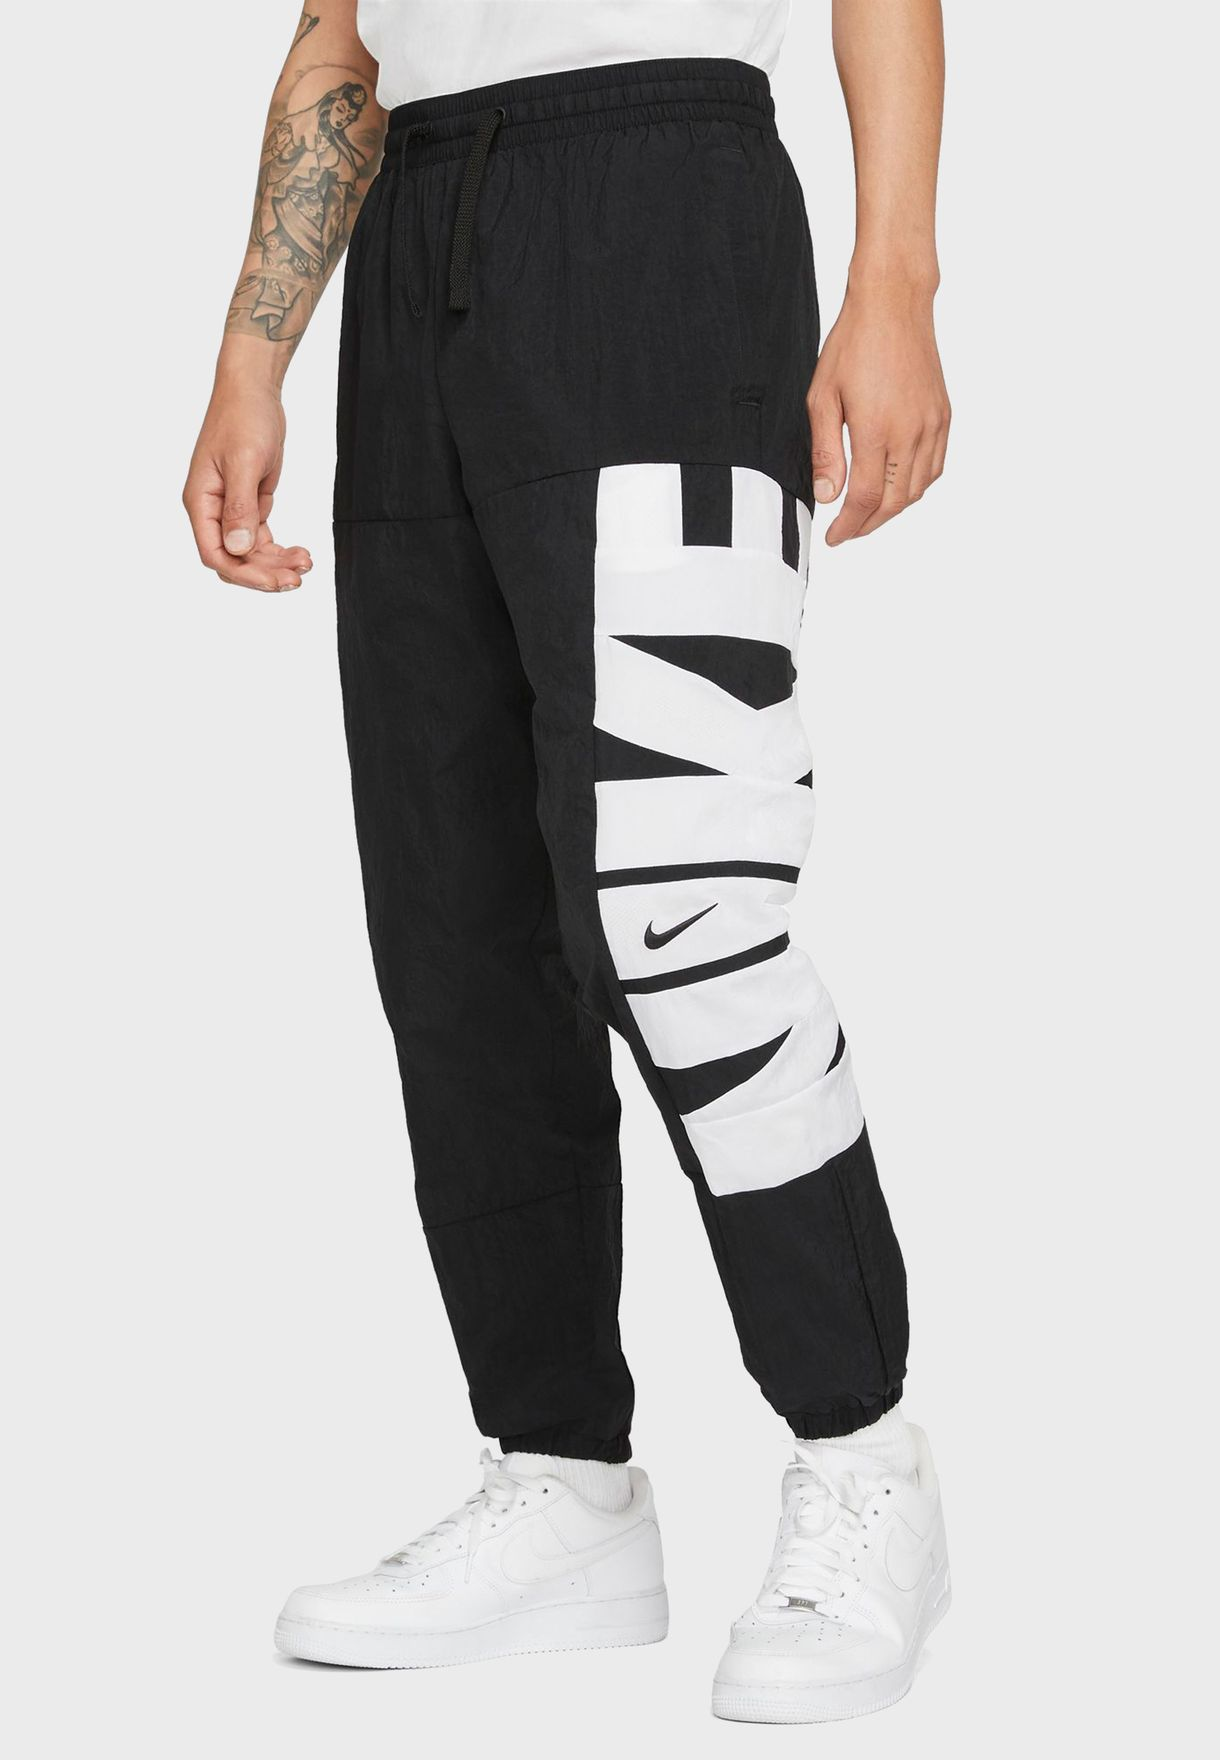 Dri-FIT Starting 5 Sweatpants